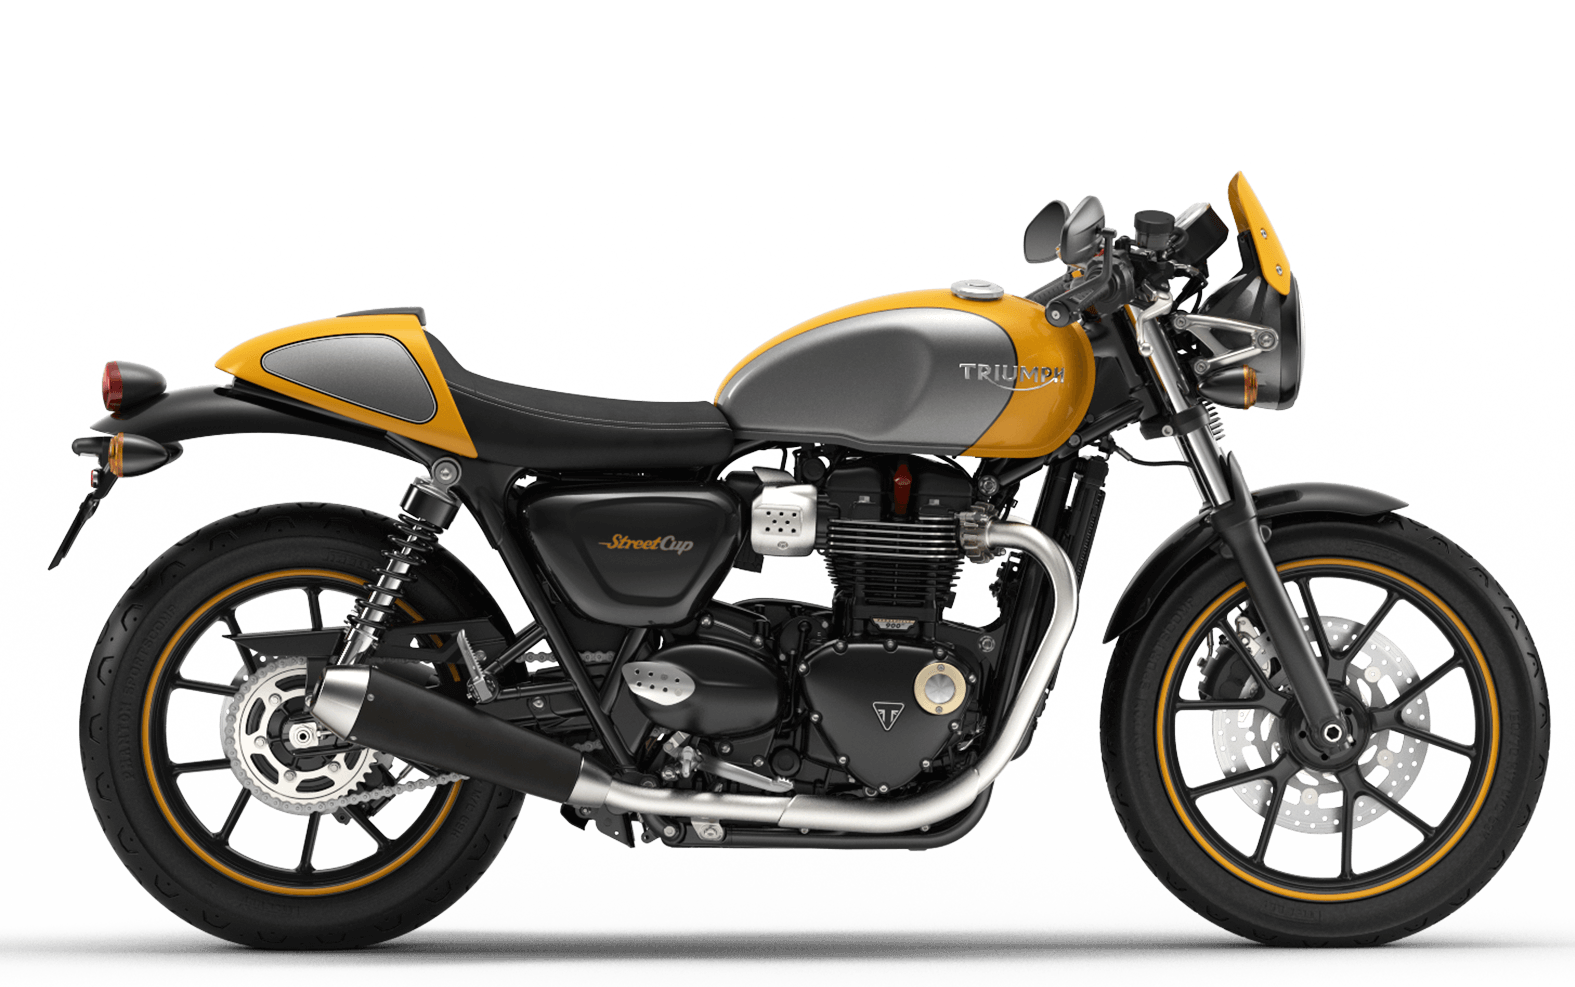 2019 Triumph Street Cup in Racing Yellow and Silver Ice